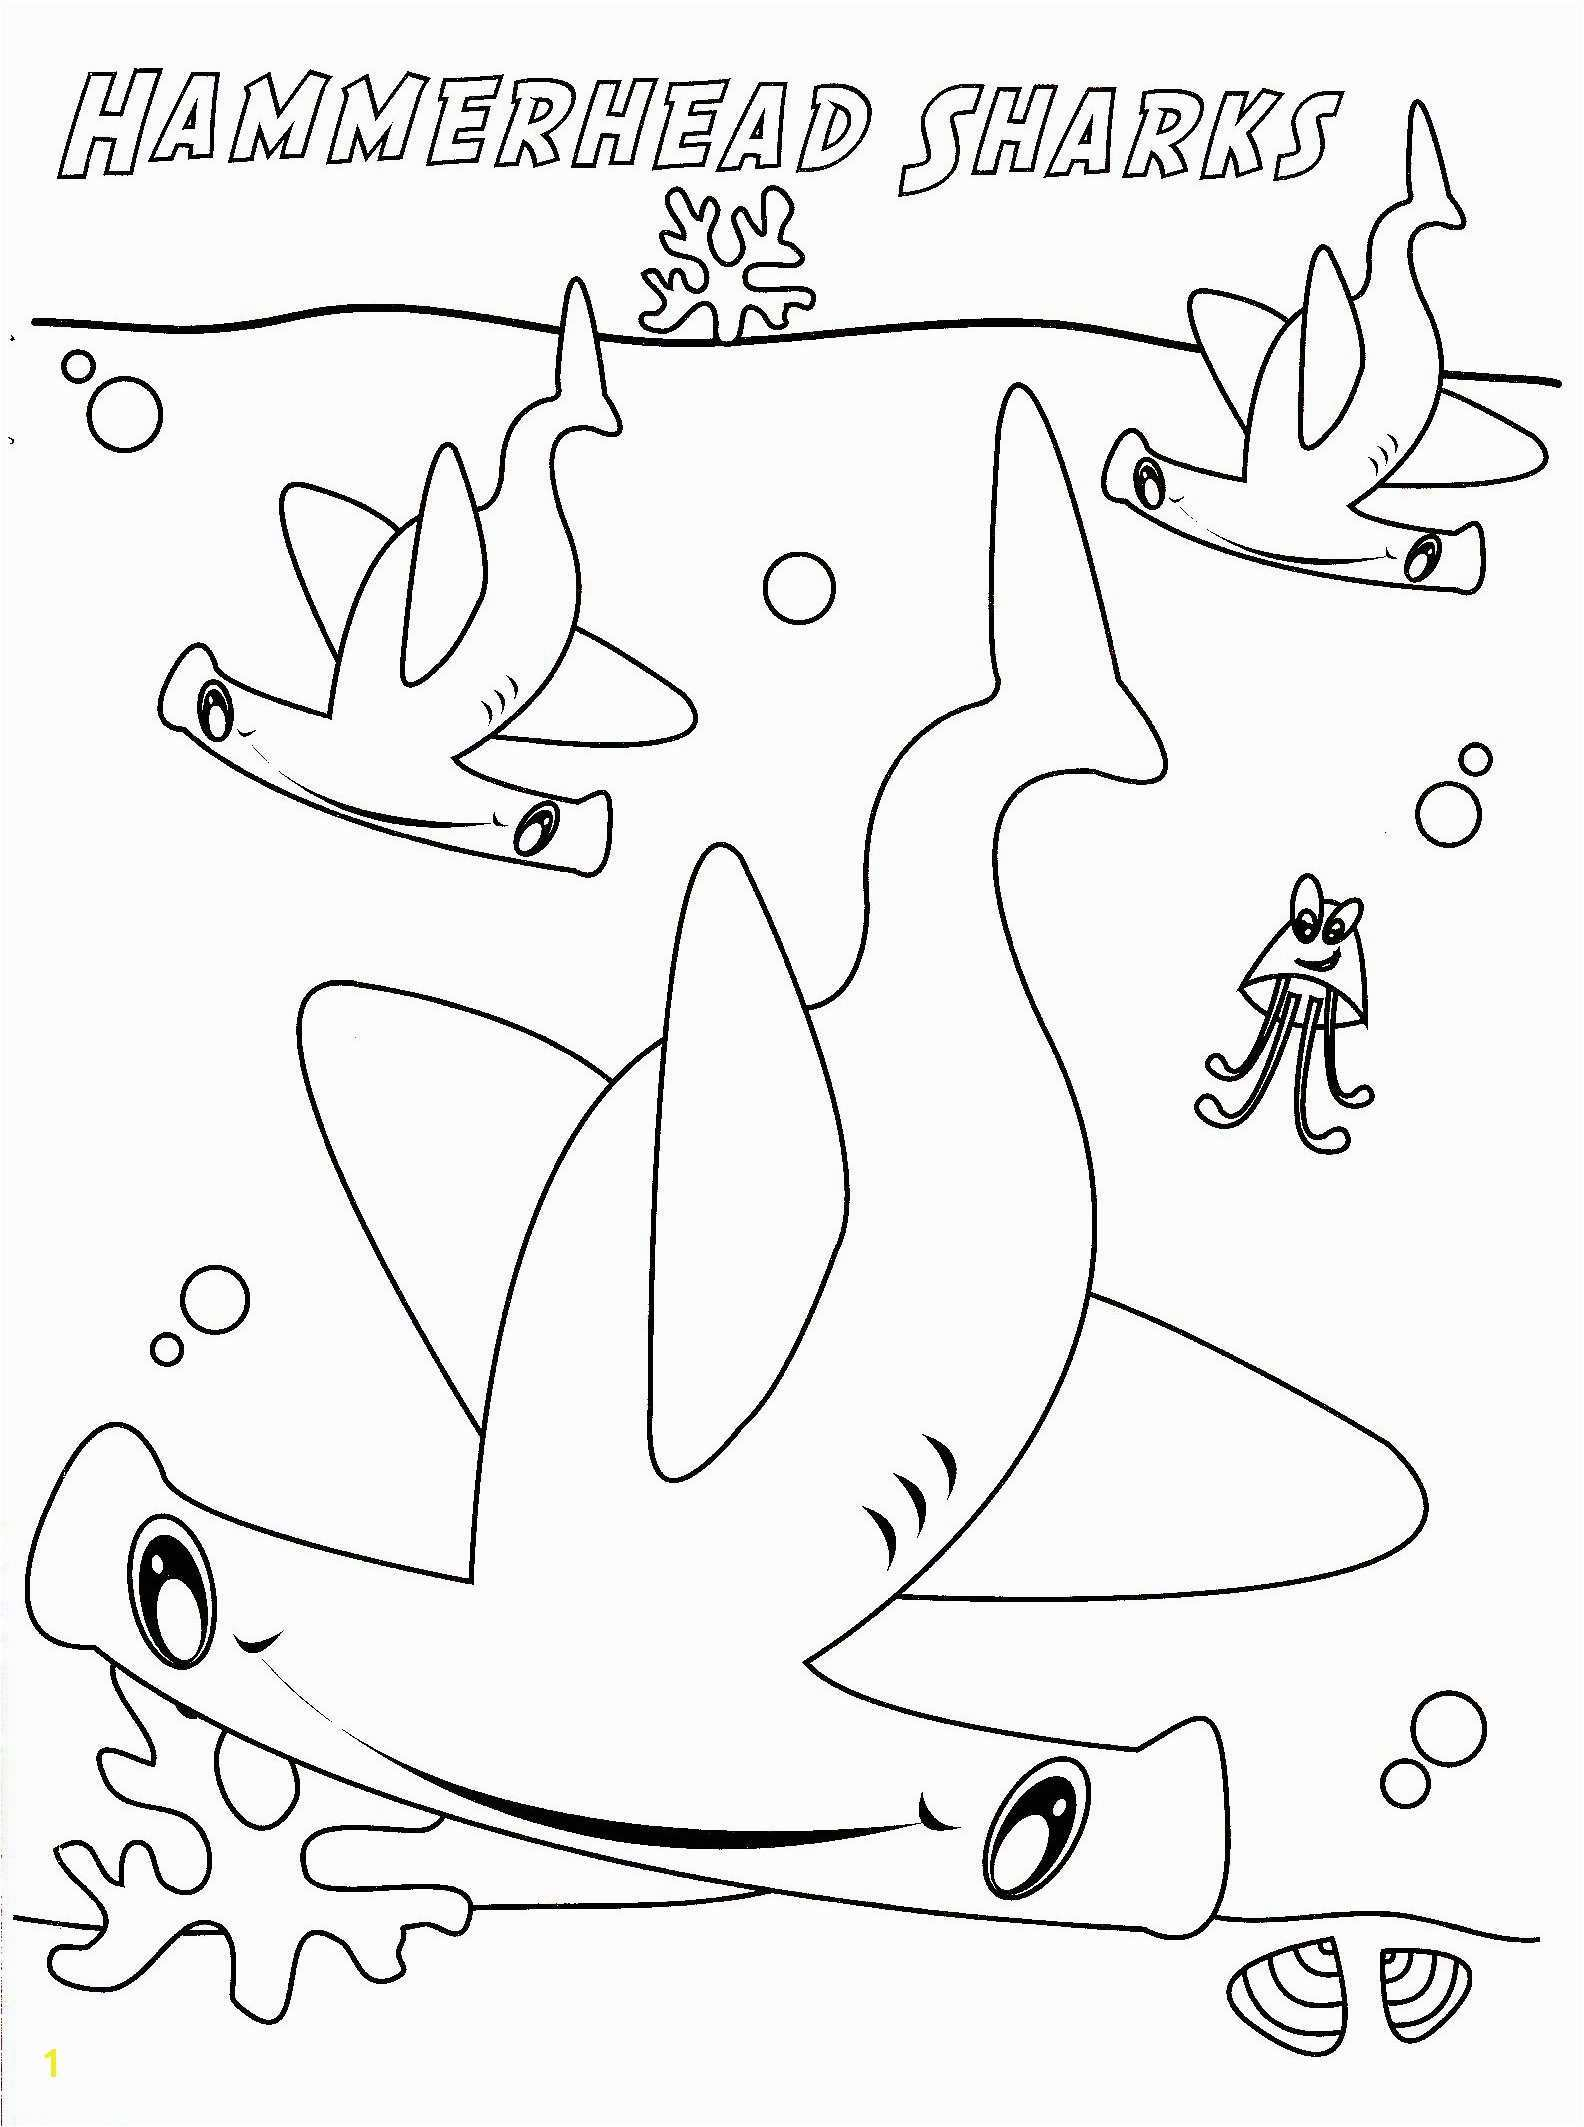 Goldfish Coloring Page Goldfish Coloring Page New Luxury Fish To Print Coloring Pages